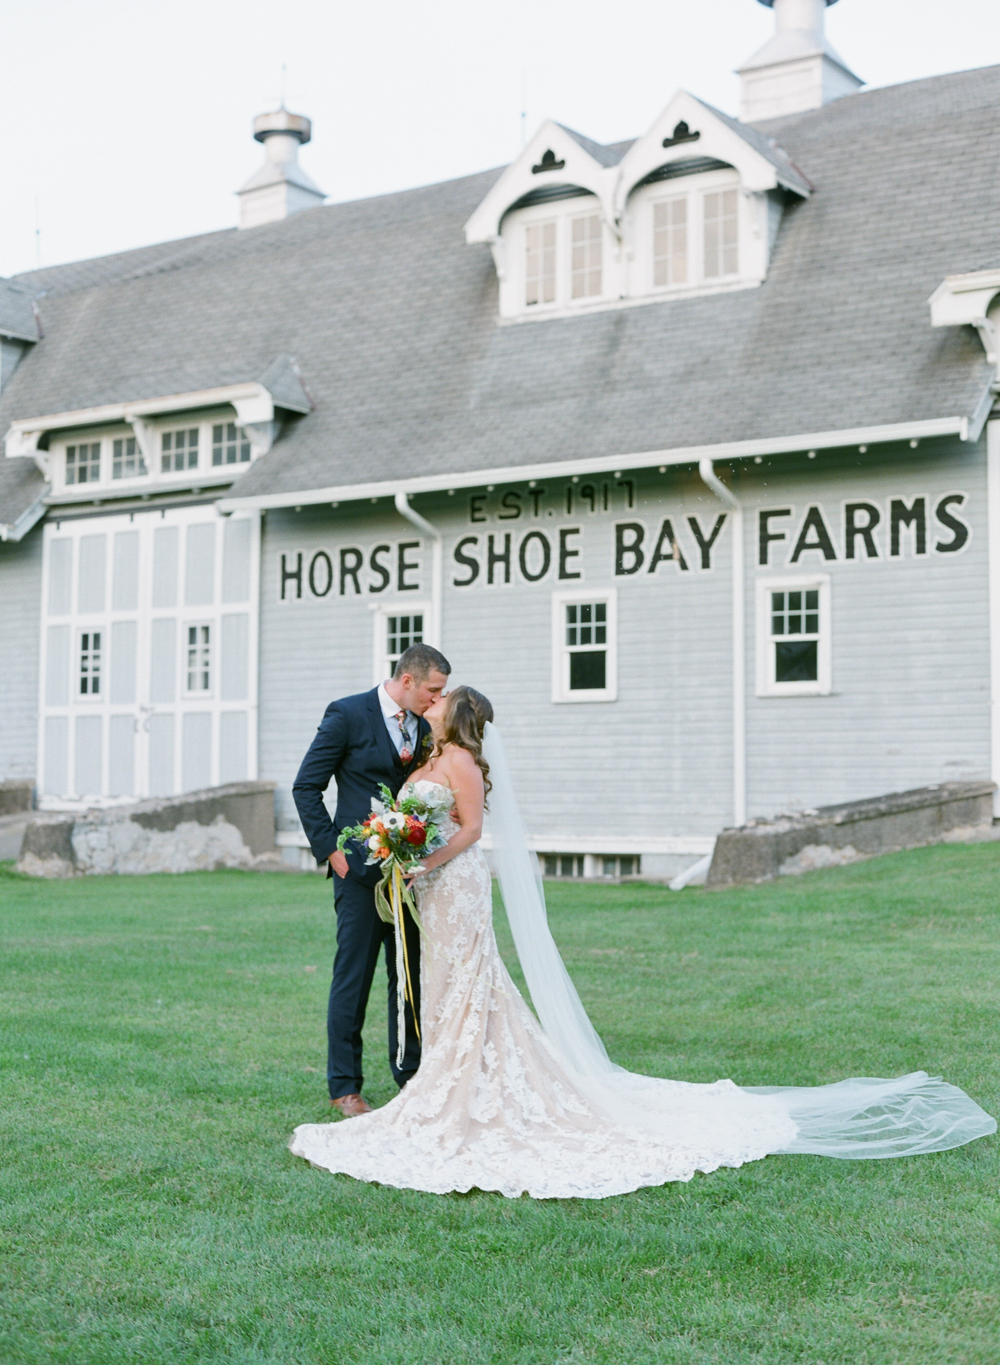 horseshoe bay farms wedding portraits by the barns